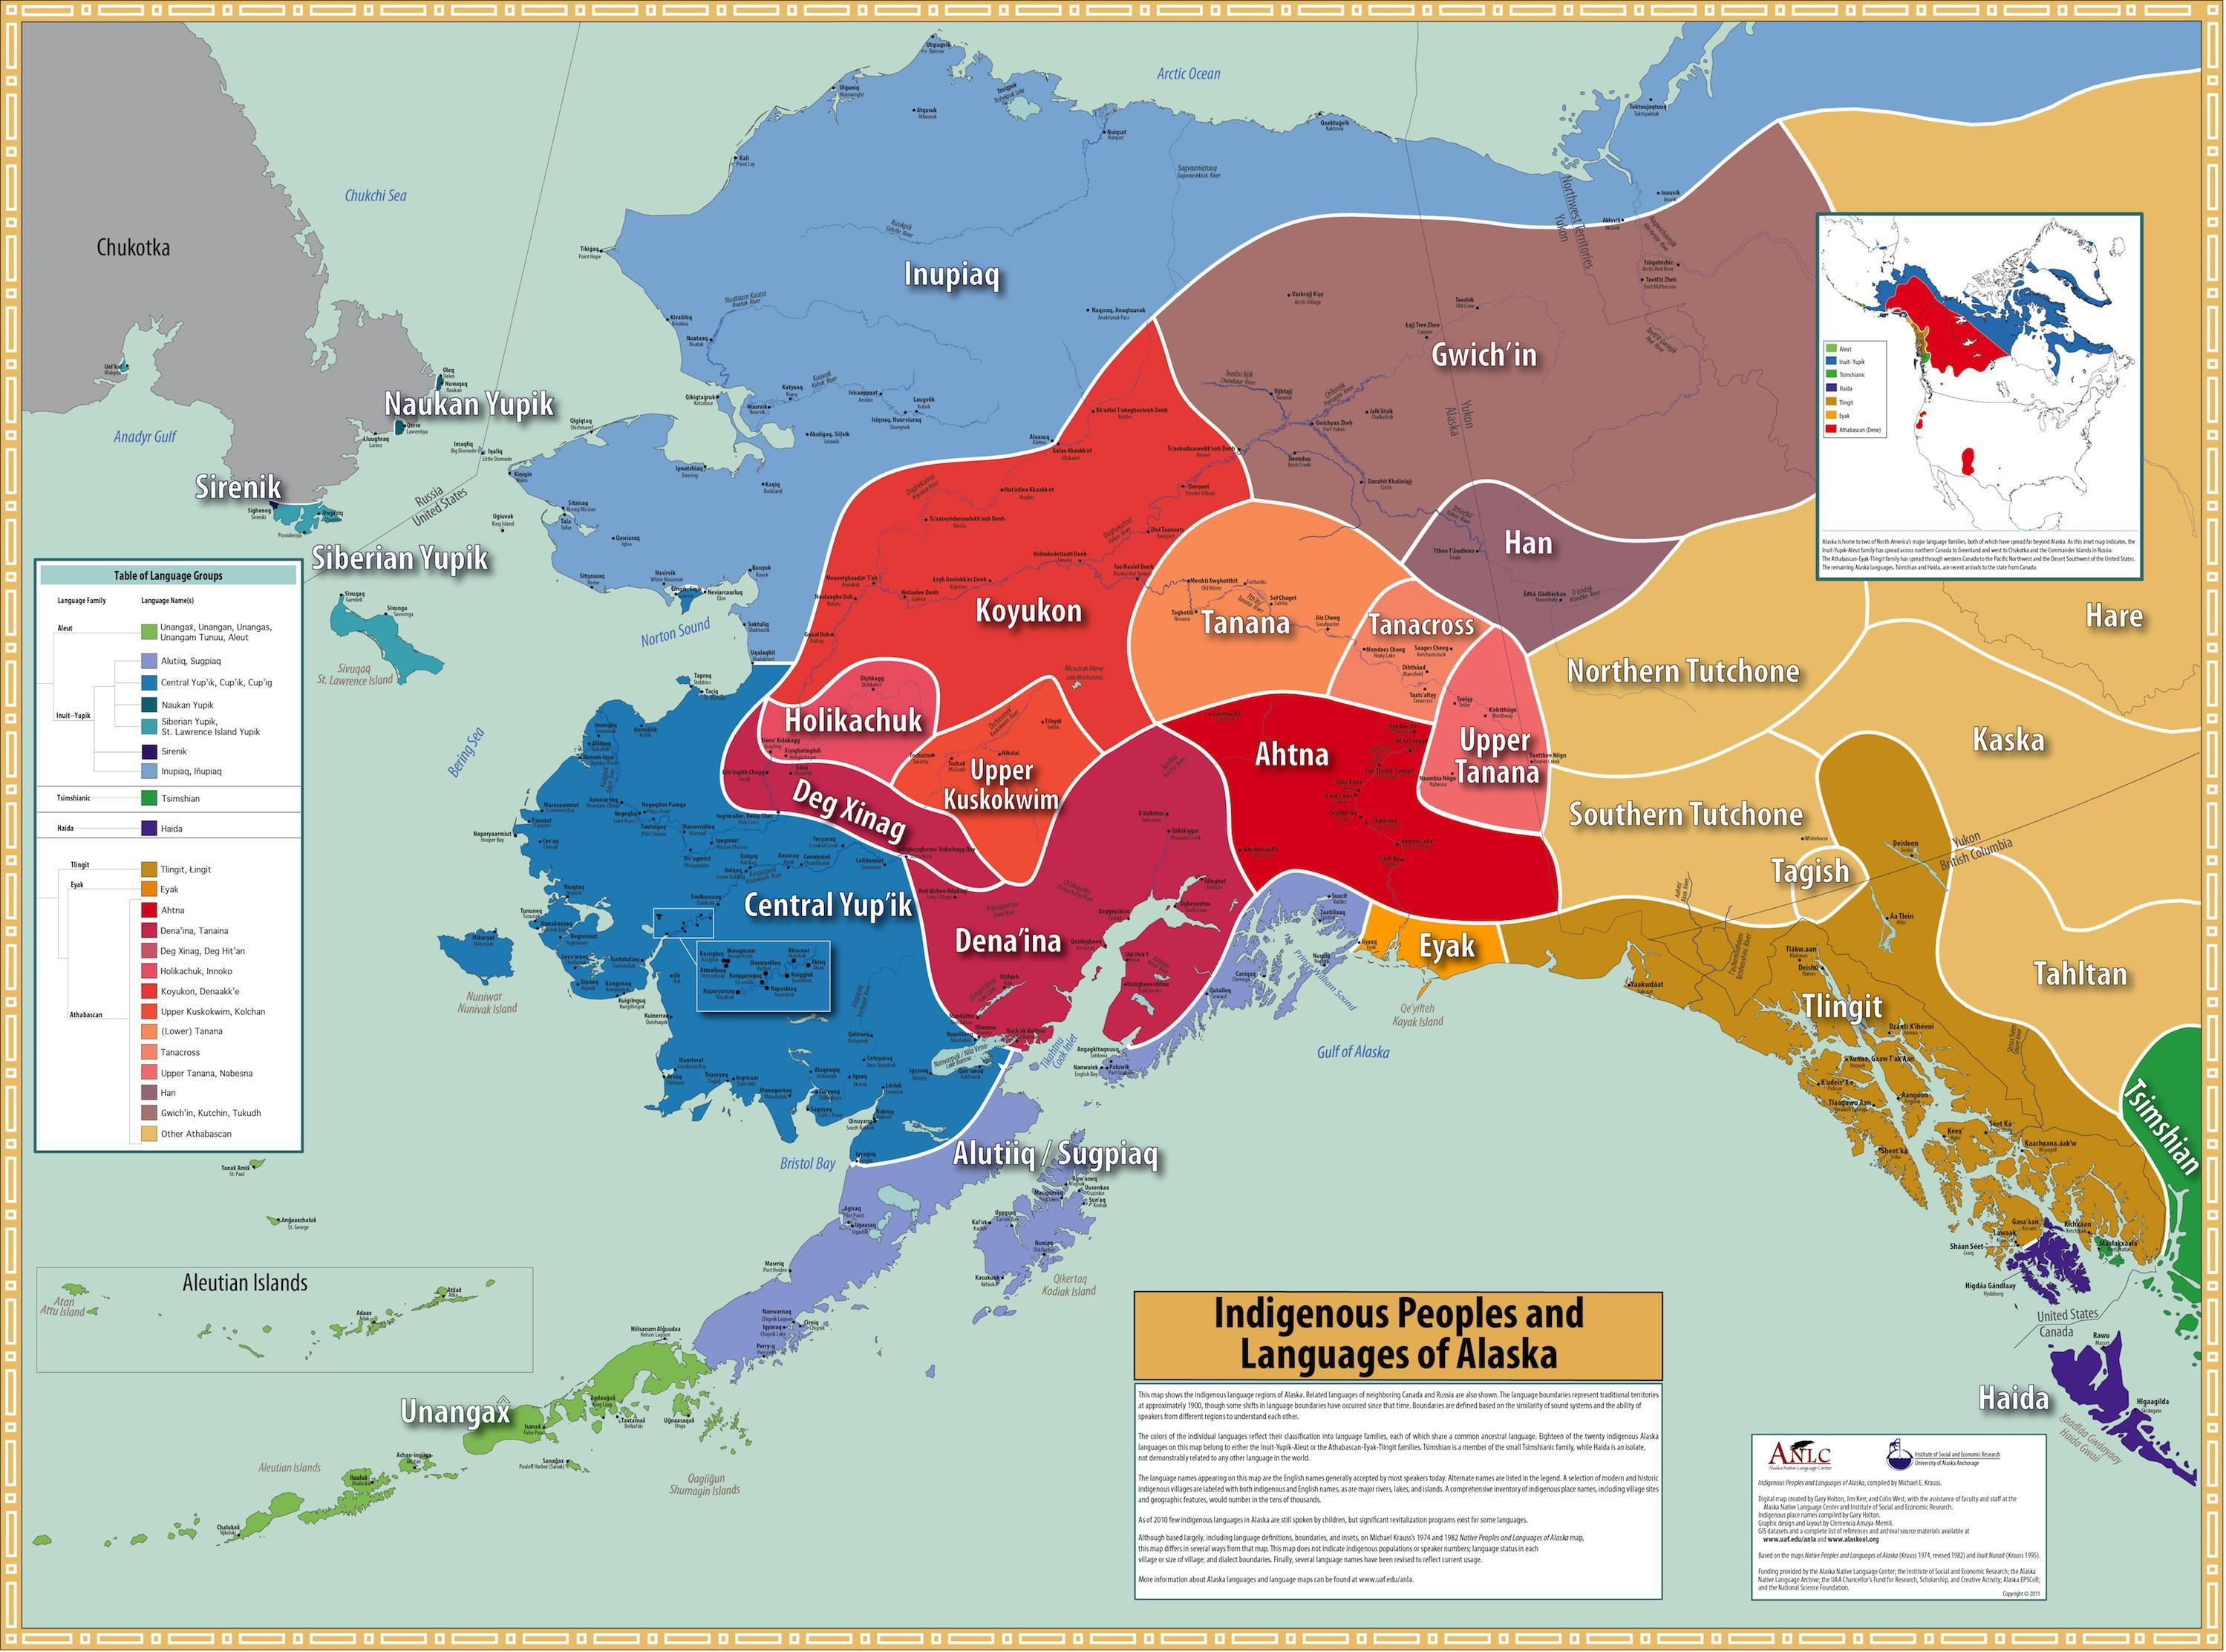 map of the indigenous language regions of alaska and closest parts of canada and russia